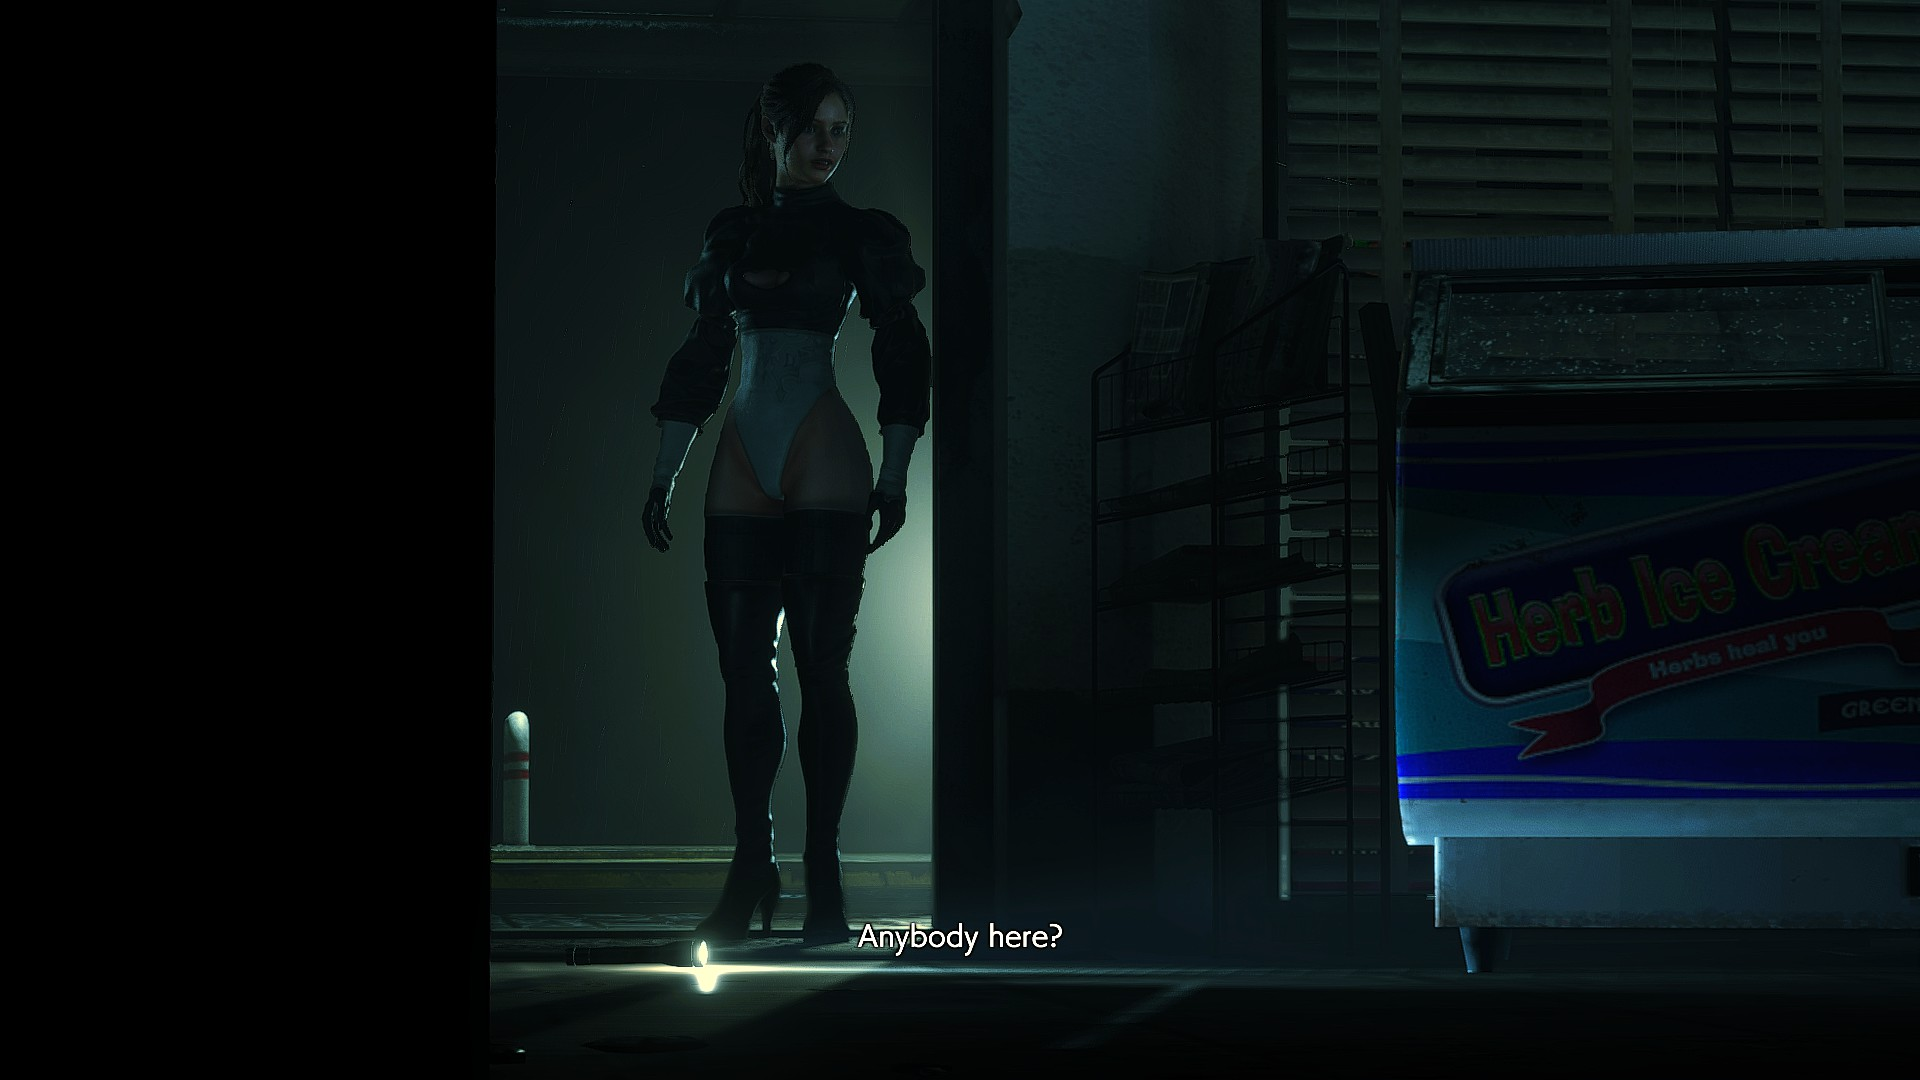 Replace Claire Redfield with 2B Mod - Resident Evil 2 Remake